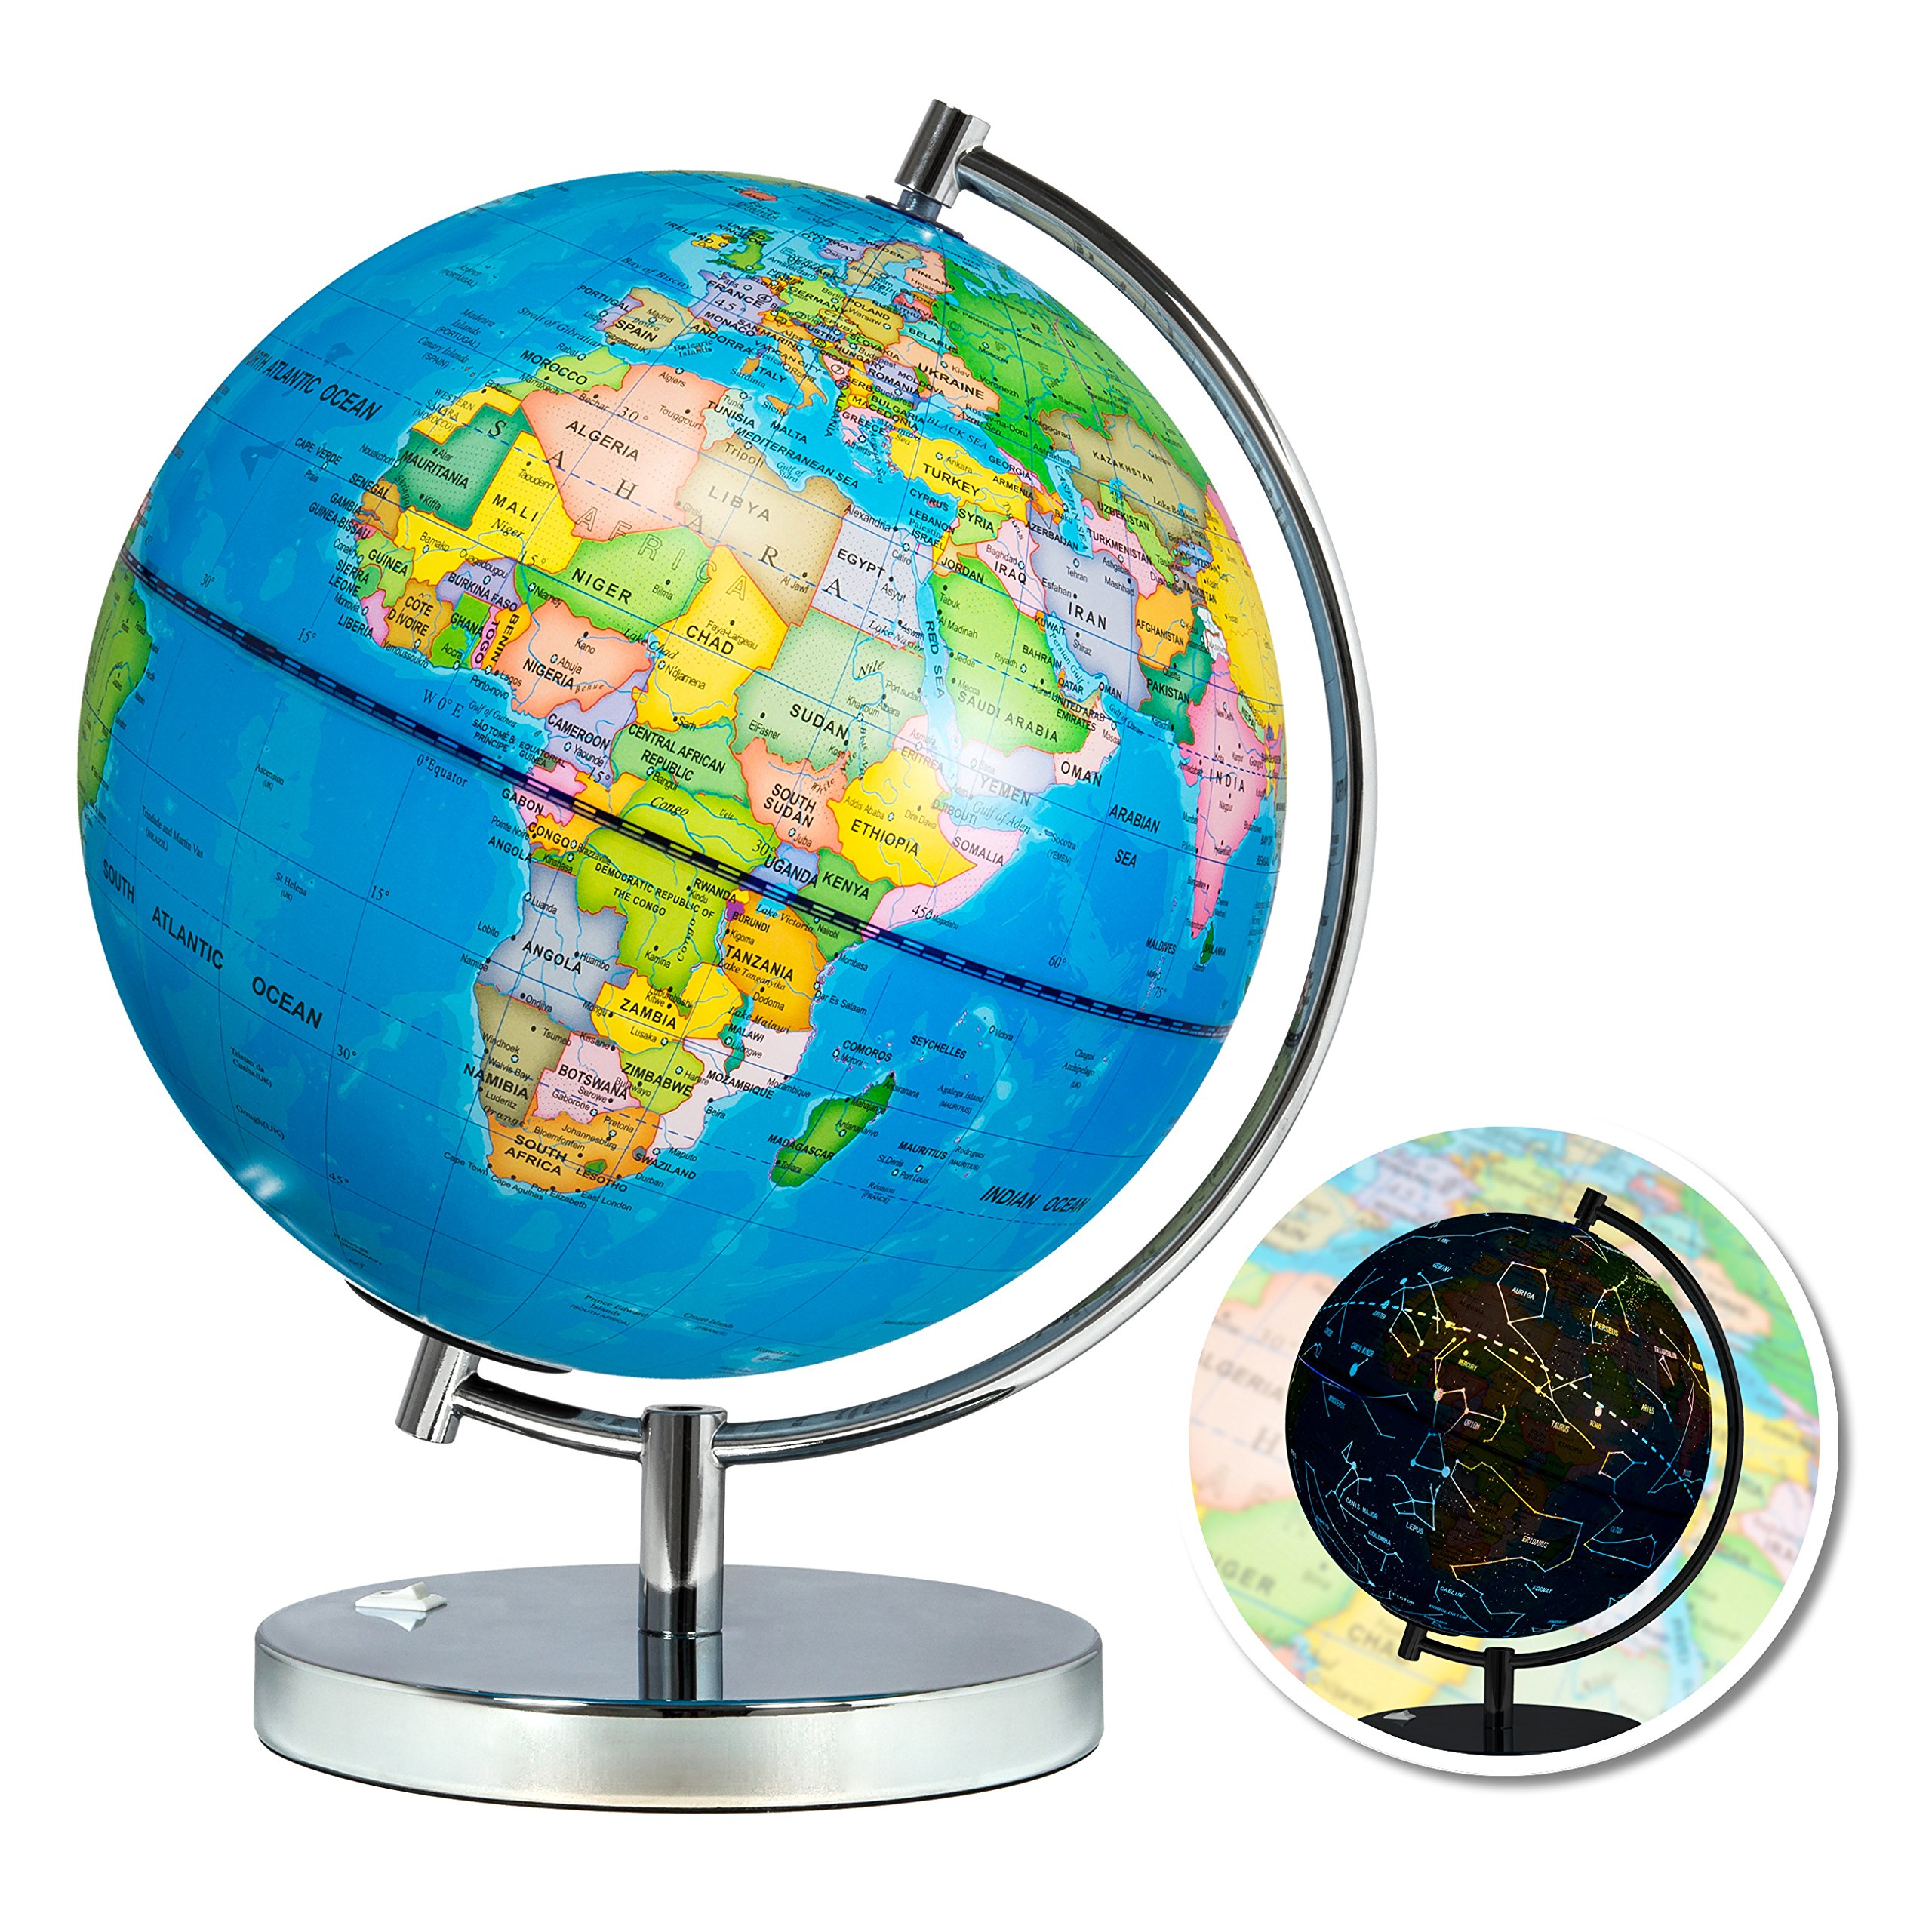 Best Choice Products Kids 2-in-1 Light-Up World Geographical Globe w/ Day and Night Constellation View, Steel Stand by Best Choice Products